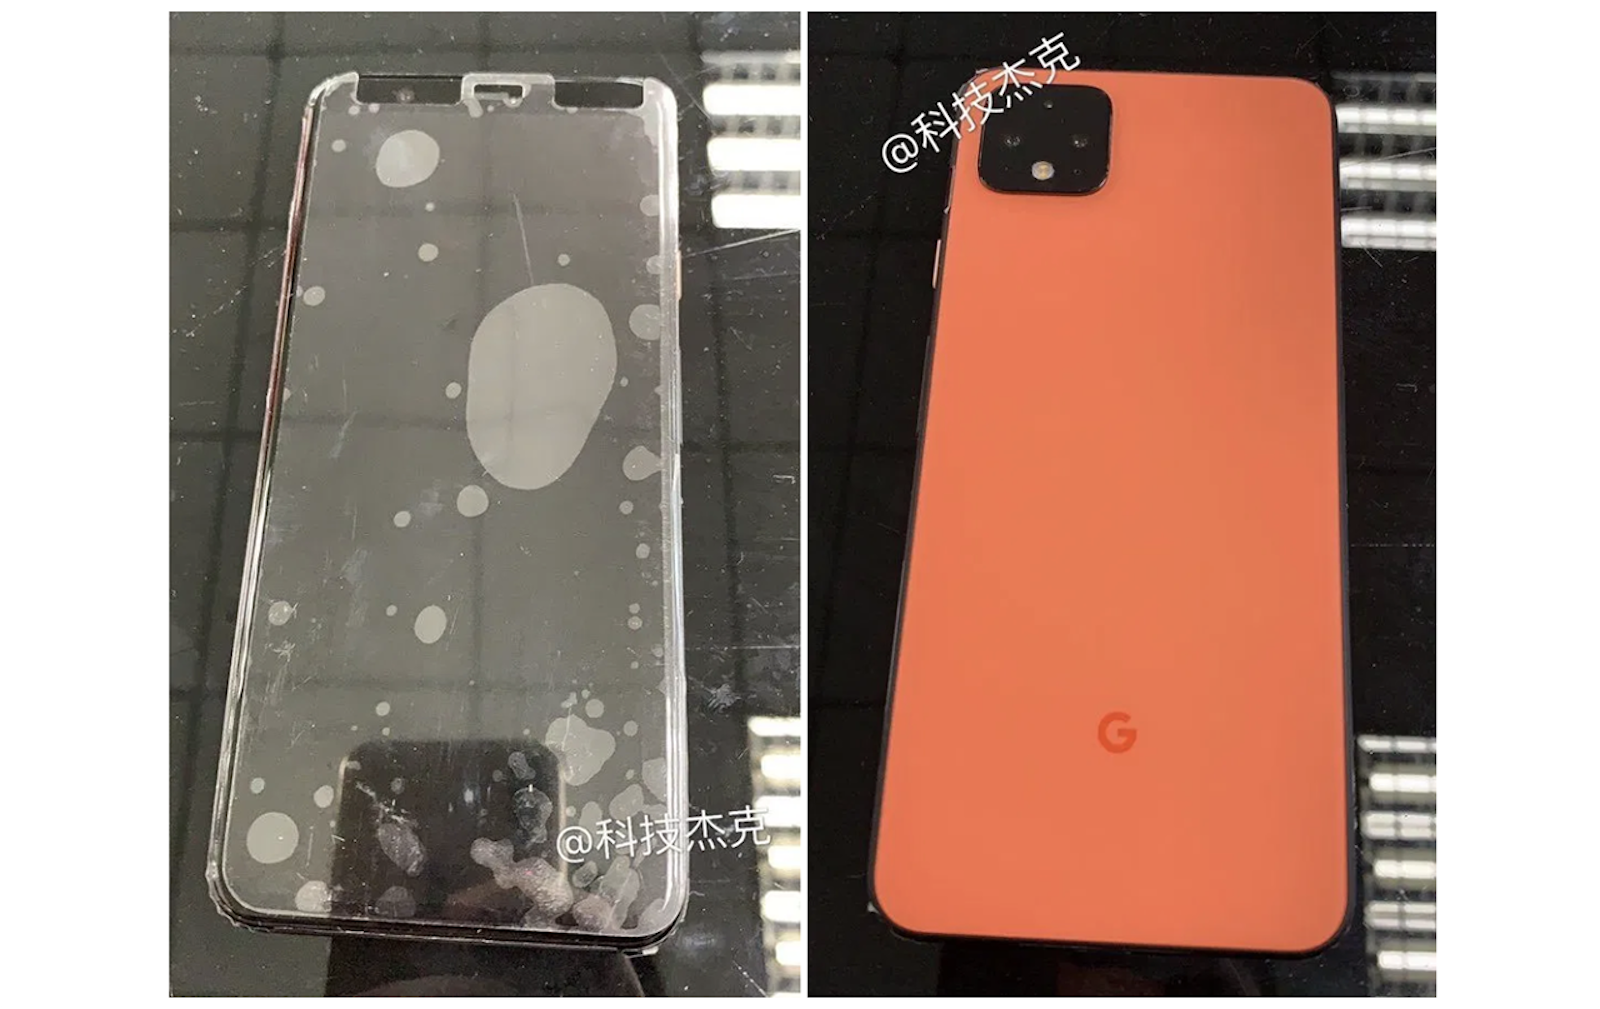 Pixel 4 Coral Orange